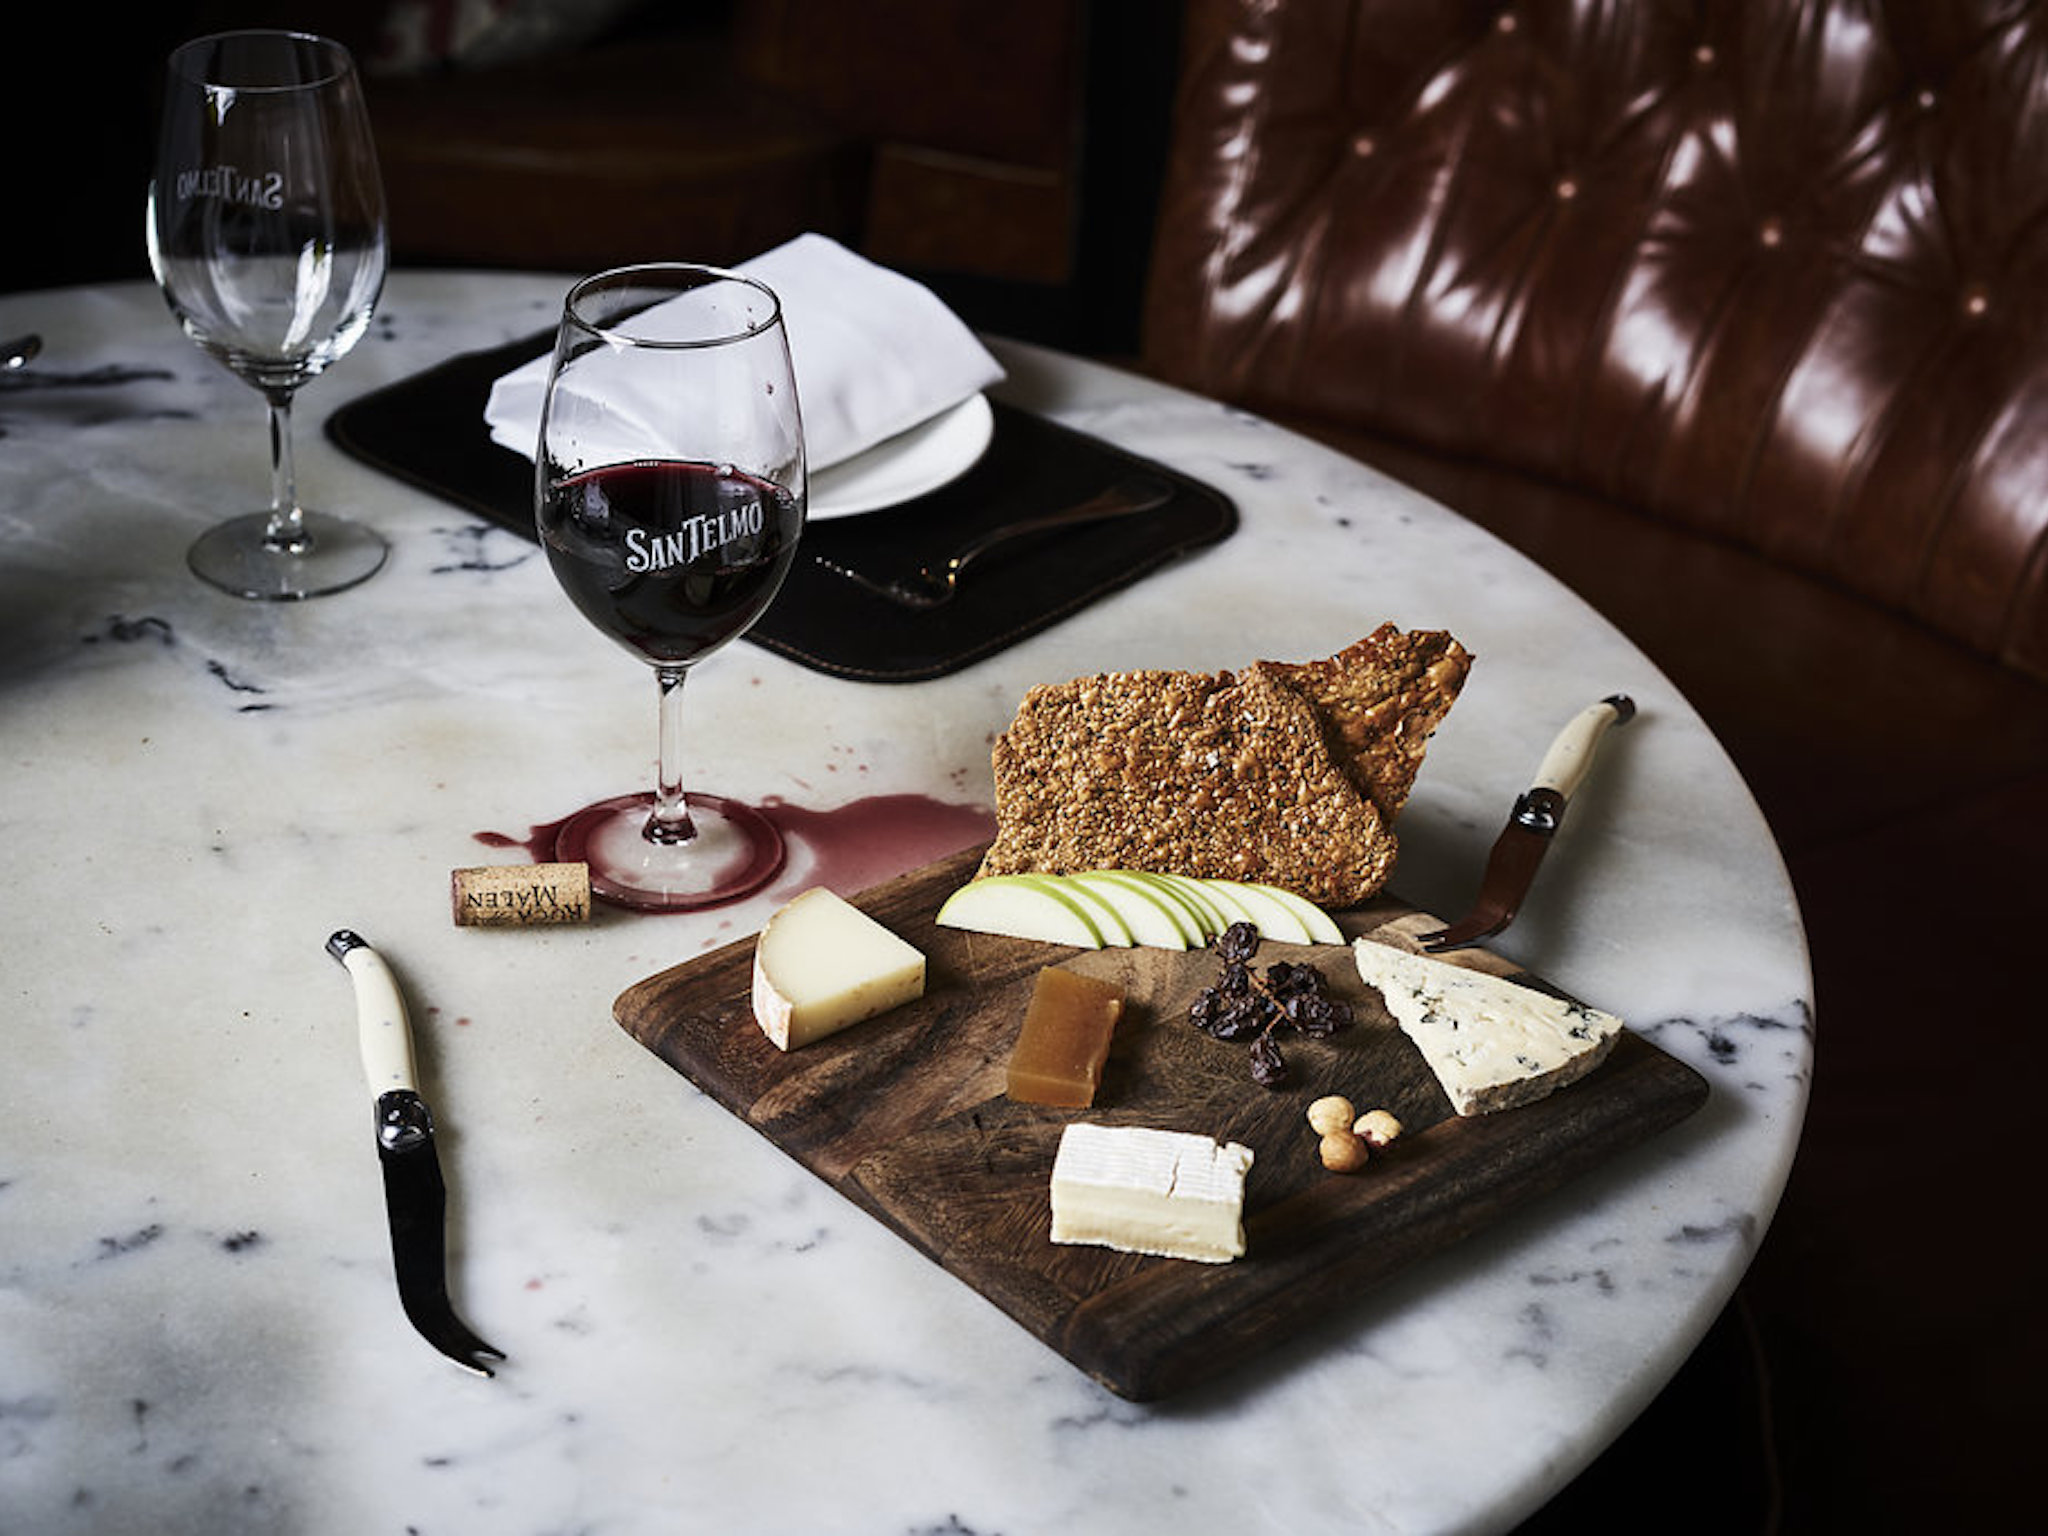 San Telmo cheese board